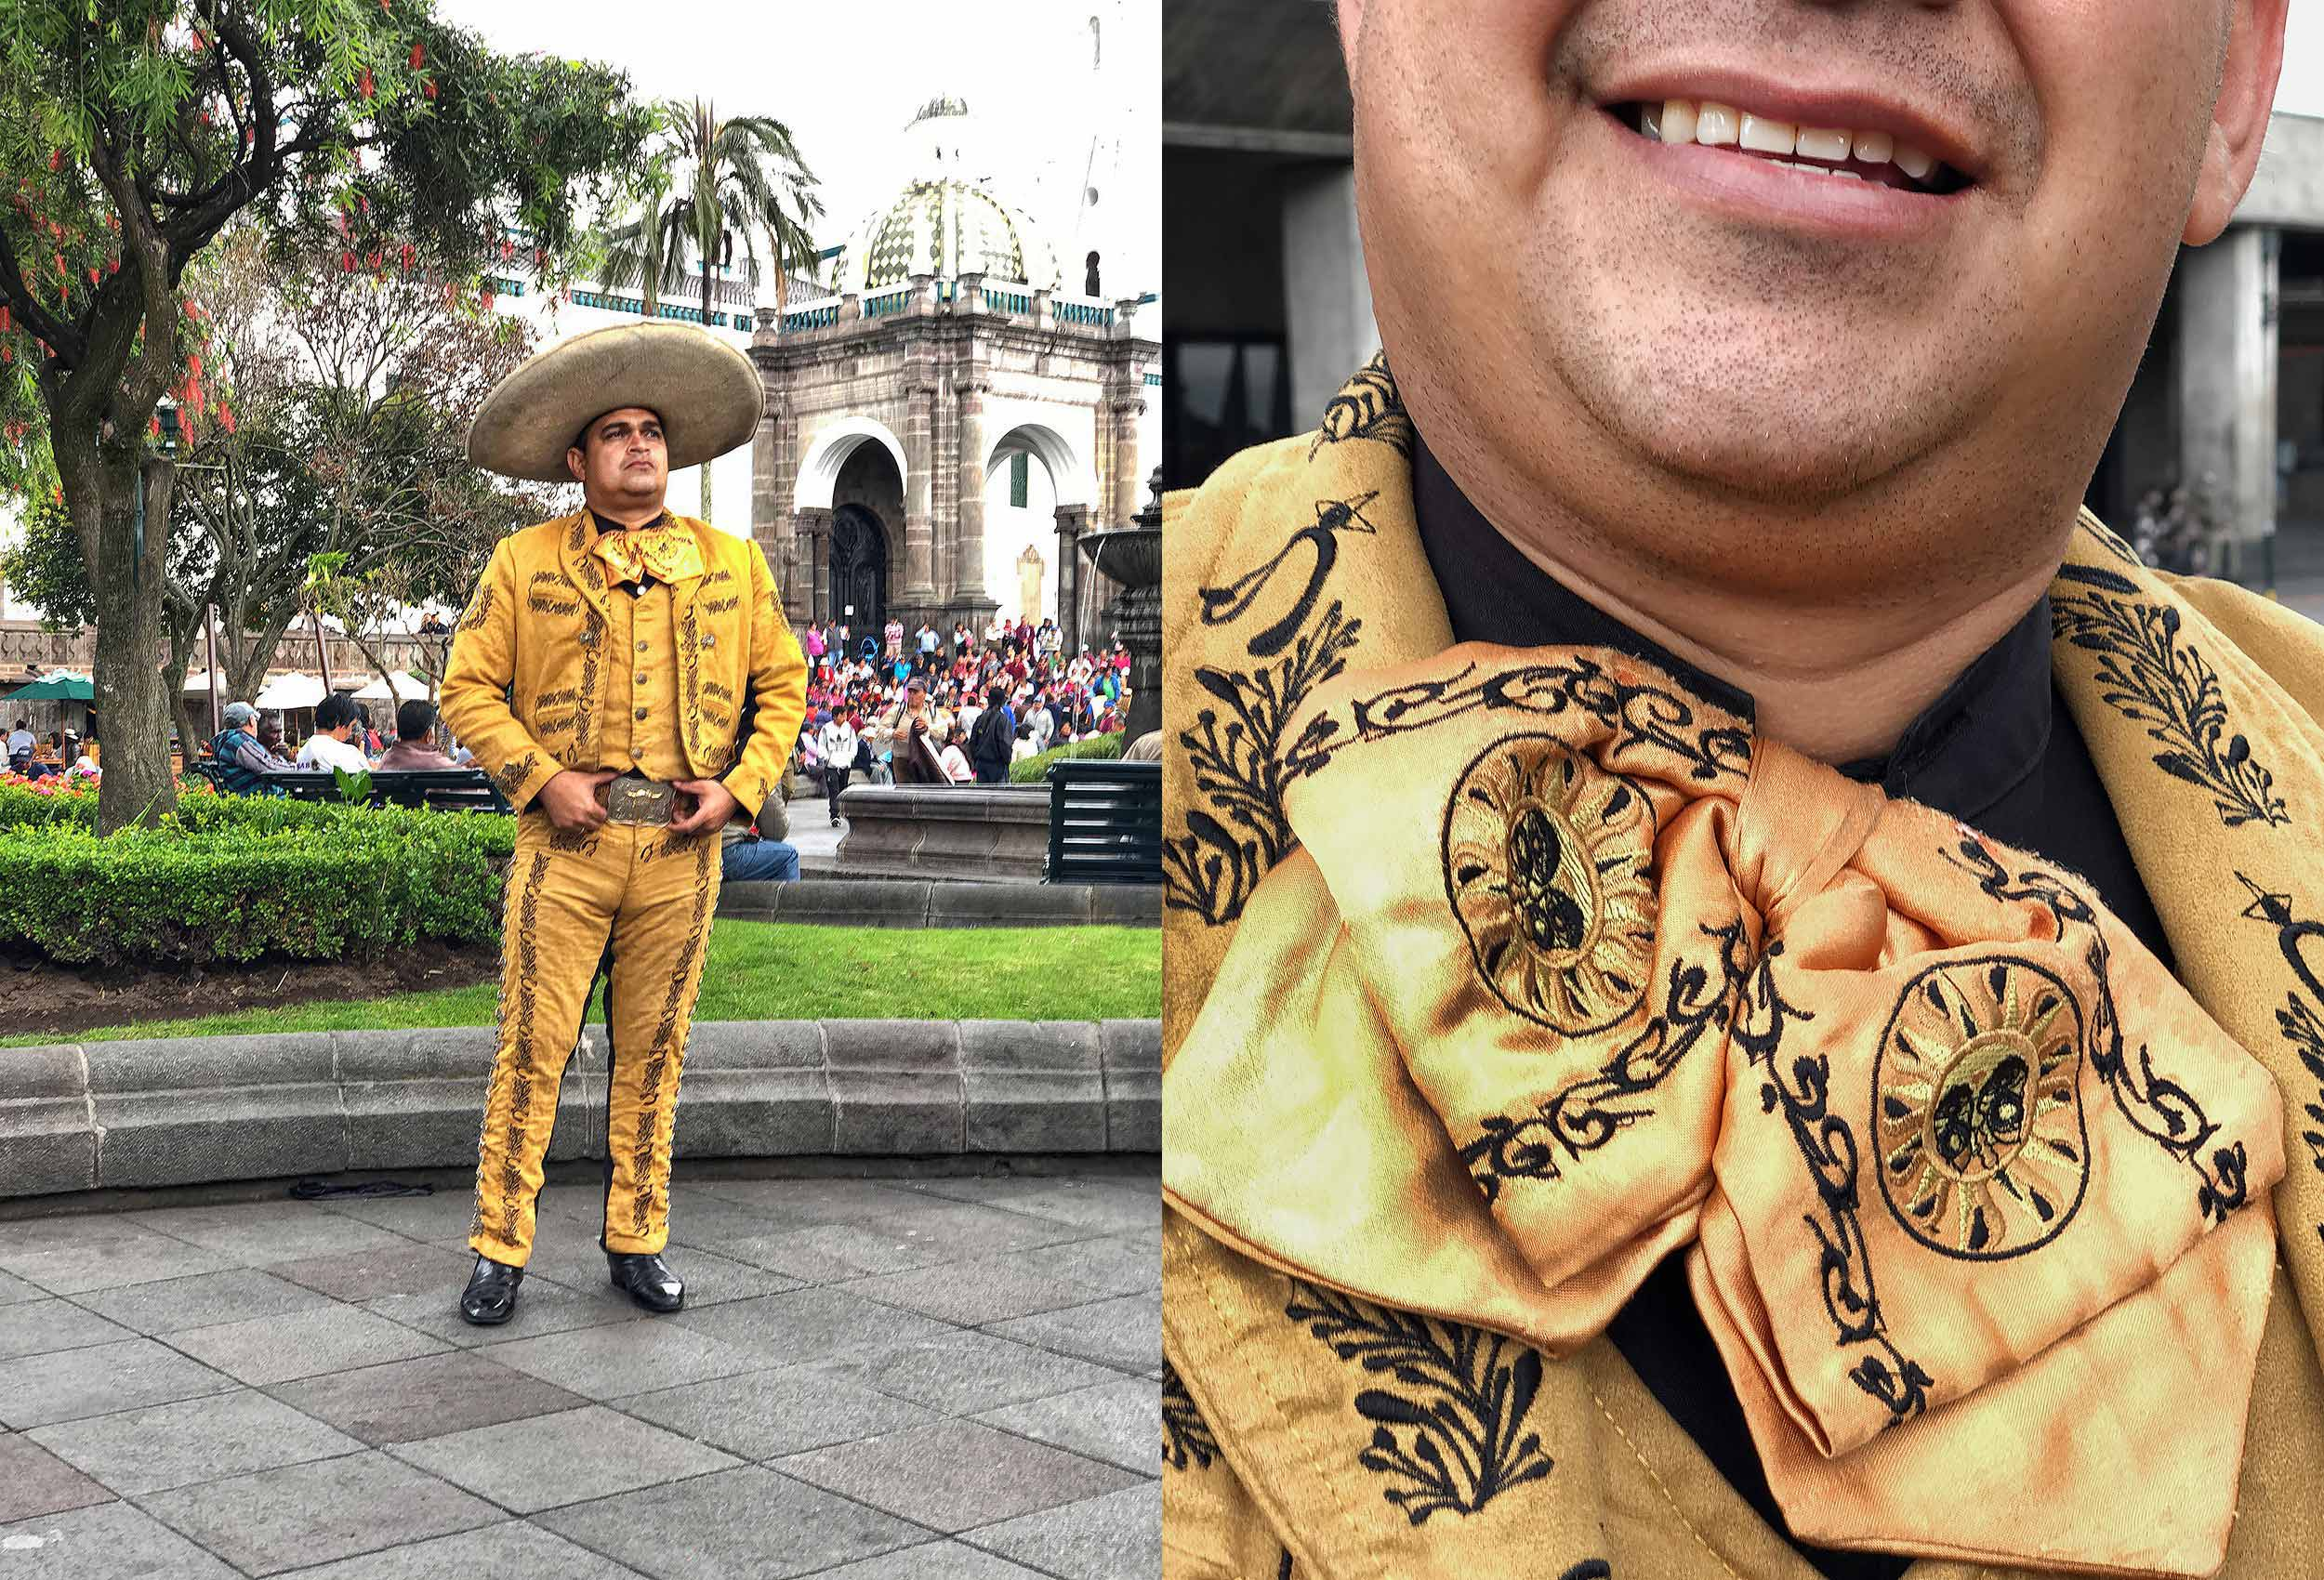 a-mariachi-man-in-quito-ecuador-by-travel-photographer-John-Hryniuk